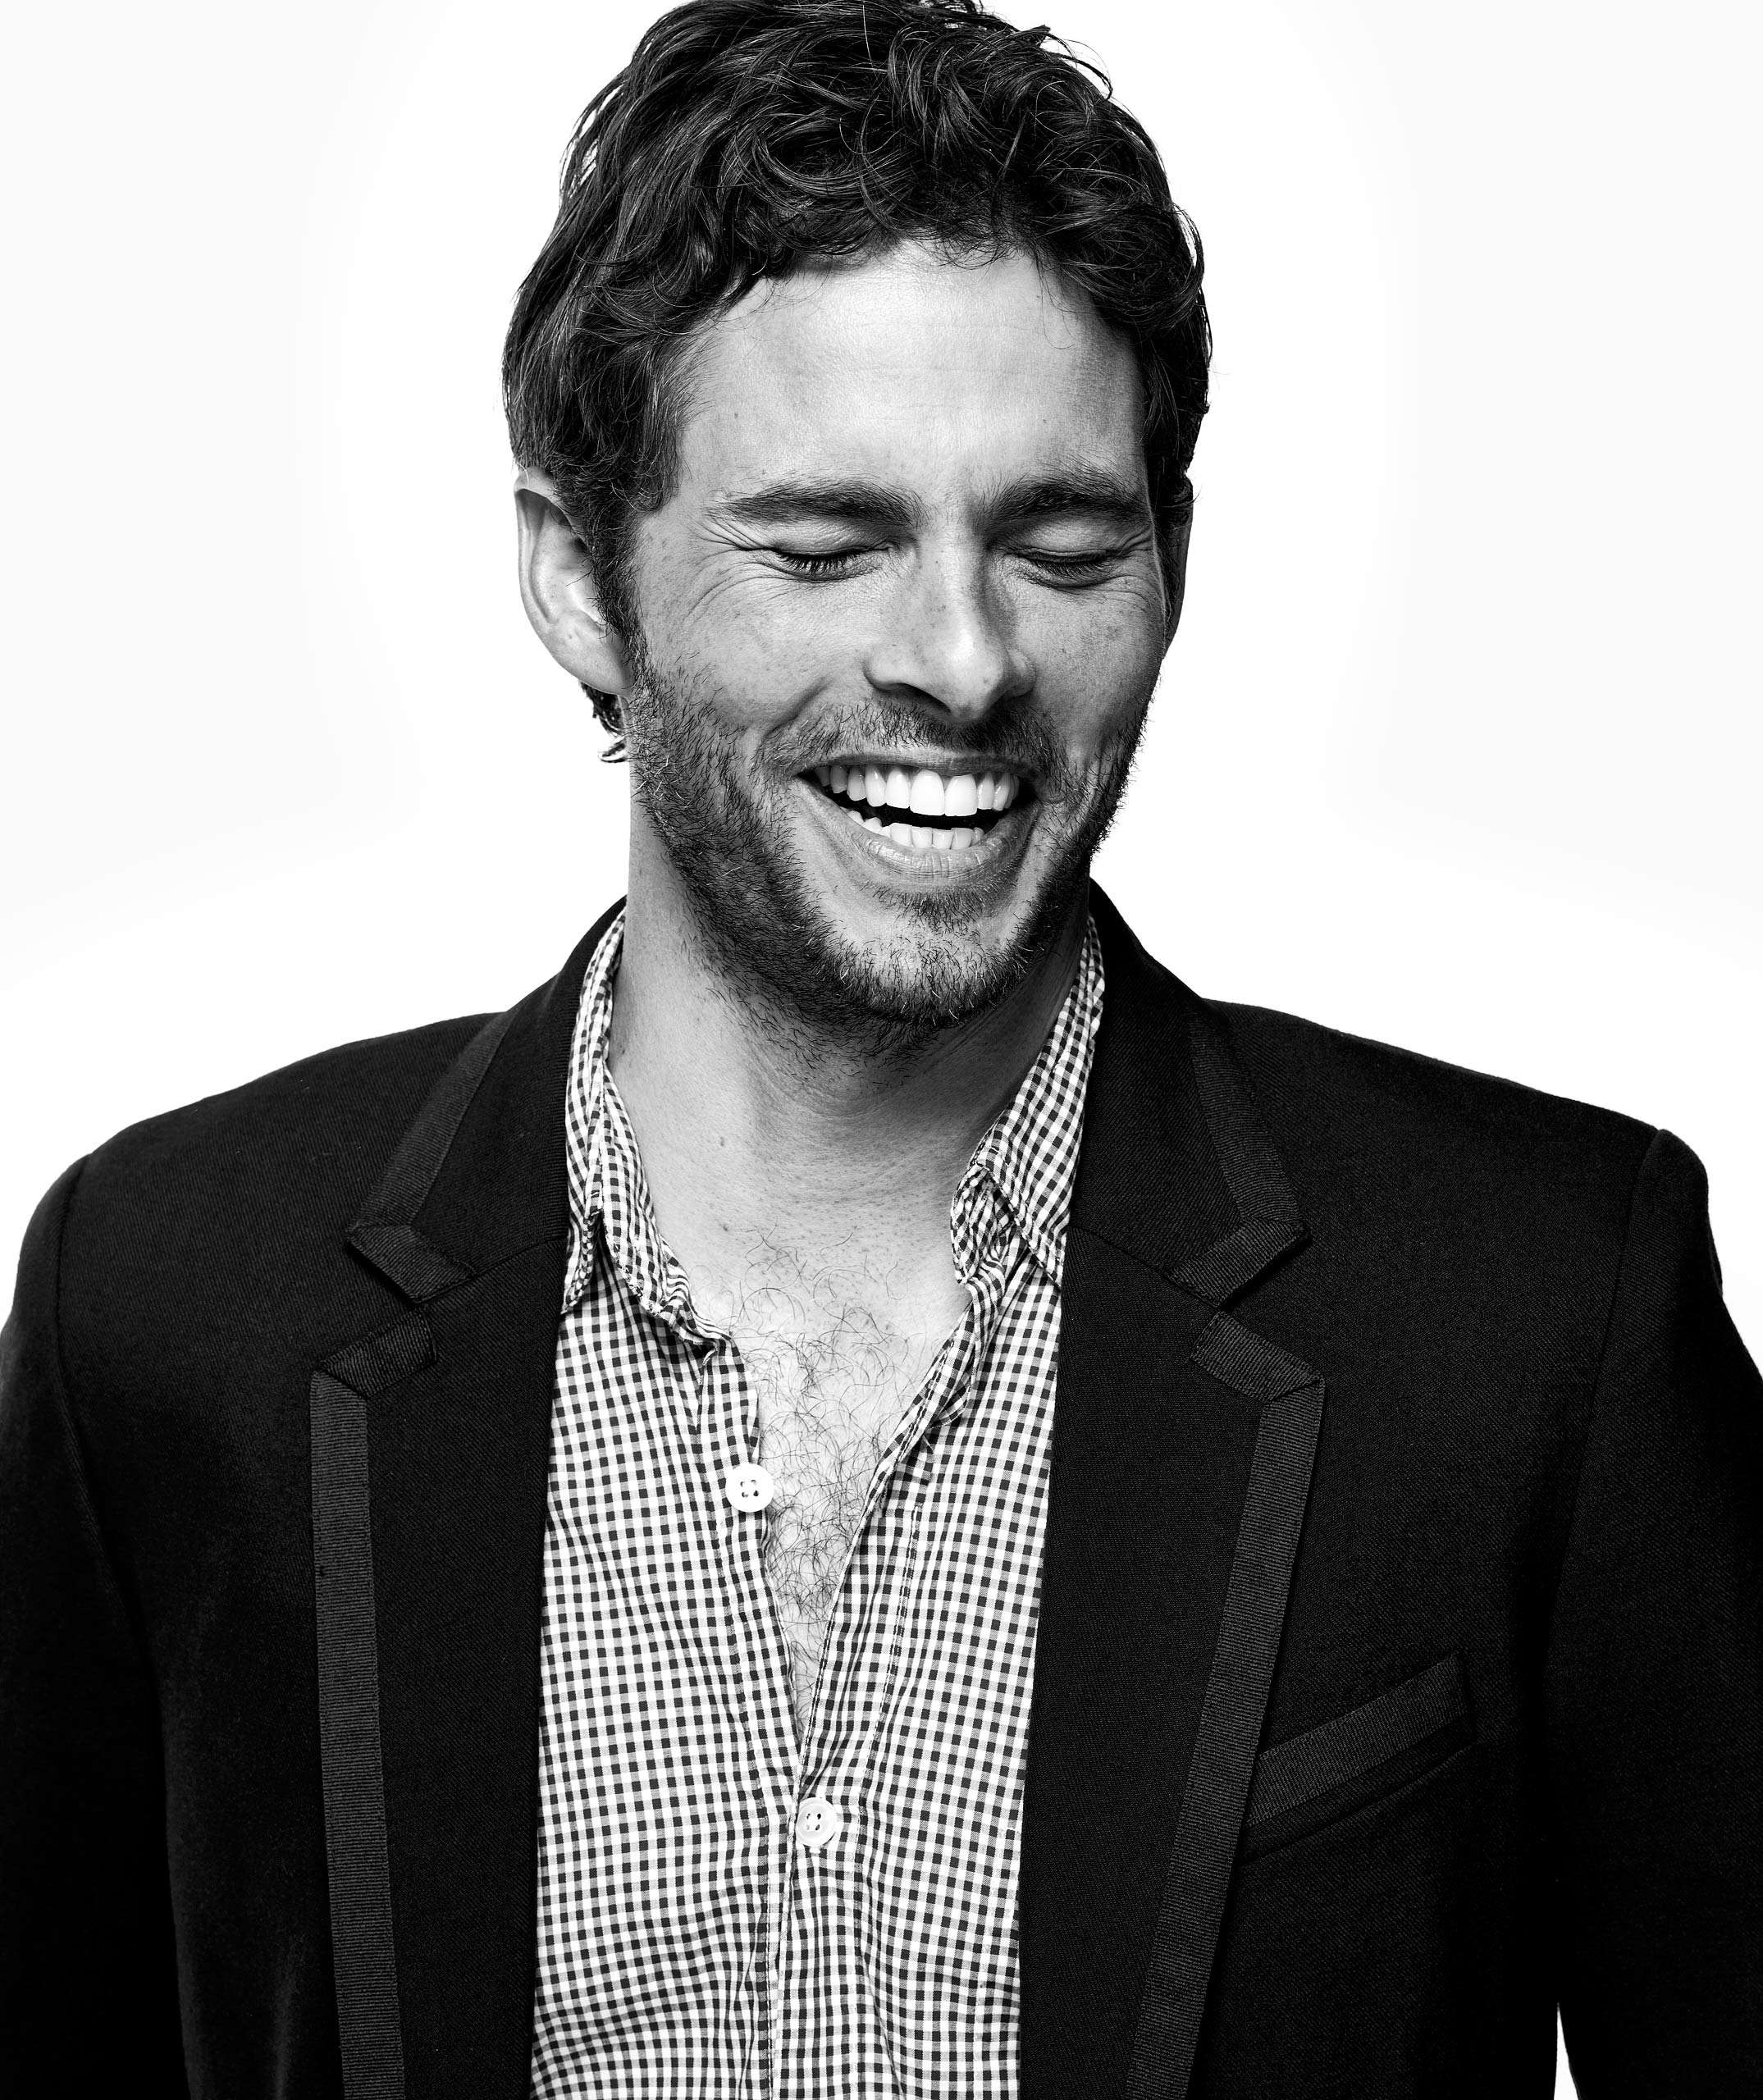 BA_JamesMarsden1_FINAL-1.jpg